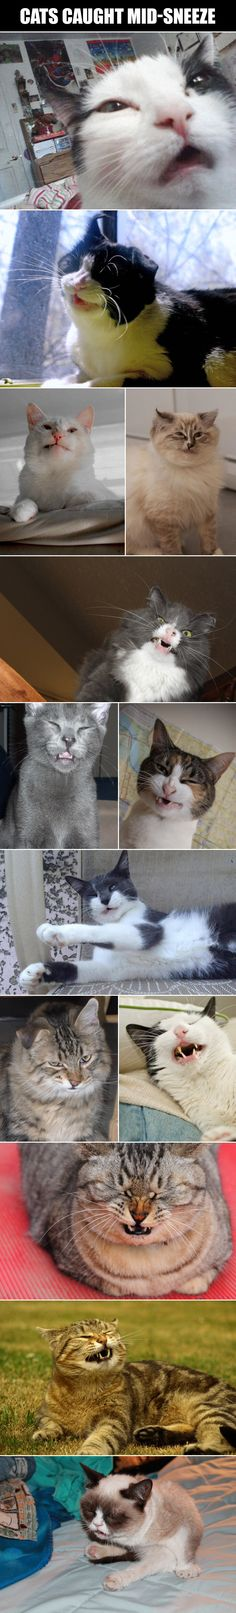 Photos Cats And Photo Cat On Pinterest - Hilarious photographs faces pulled sneezing dogs cats